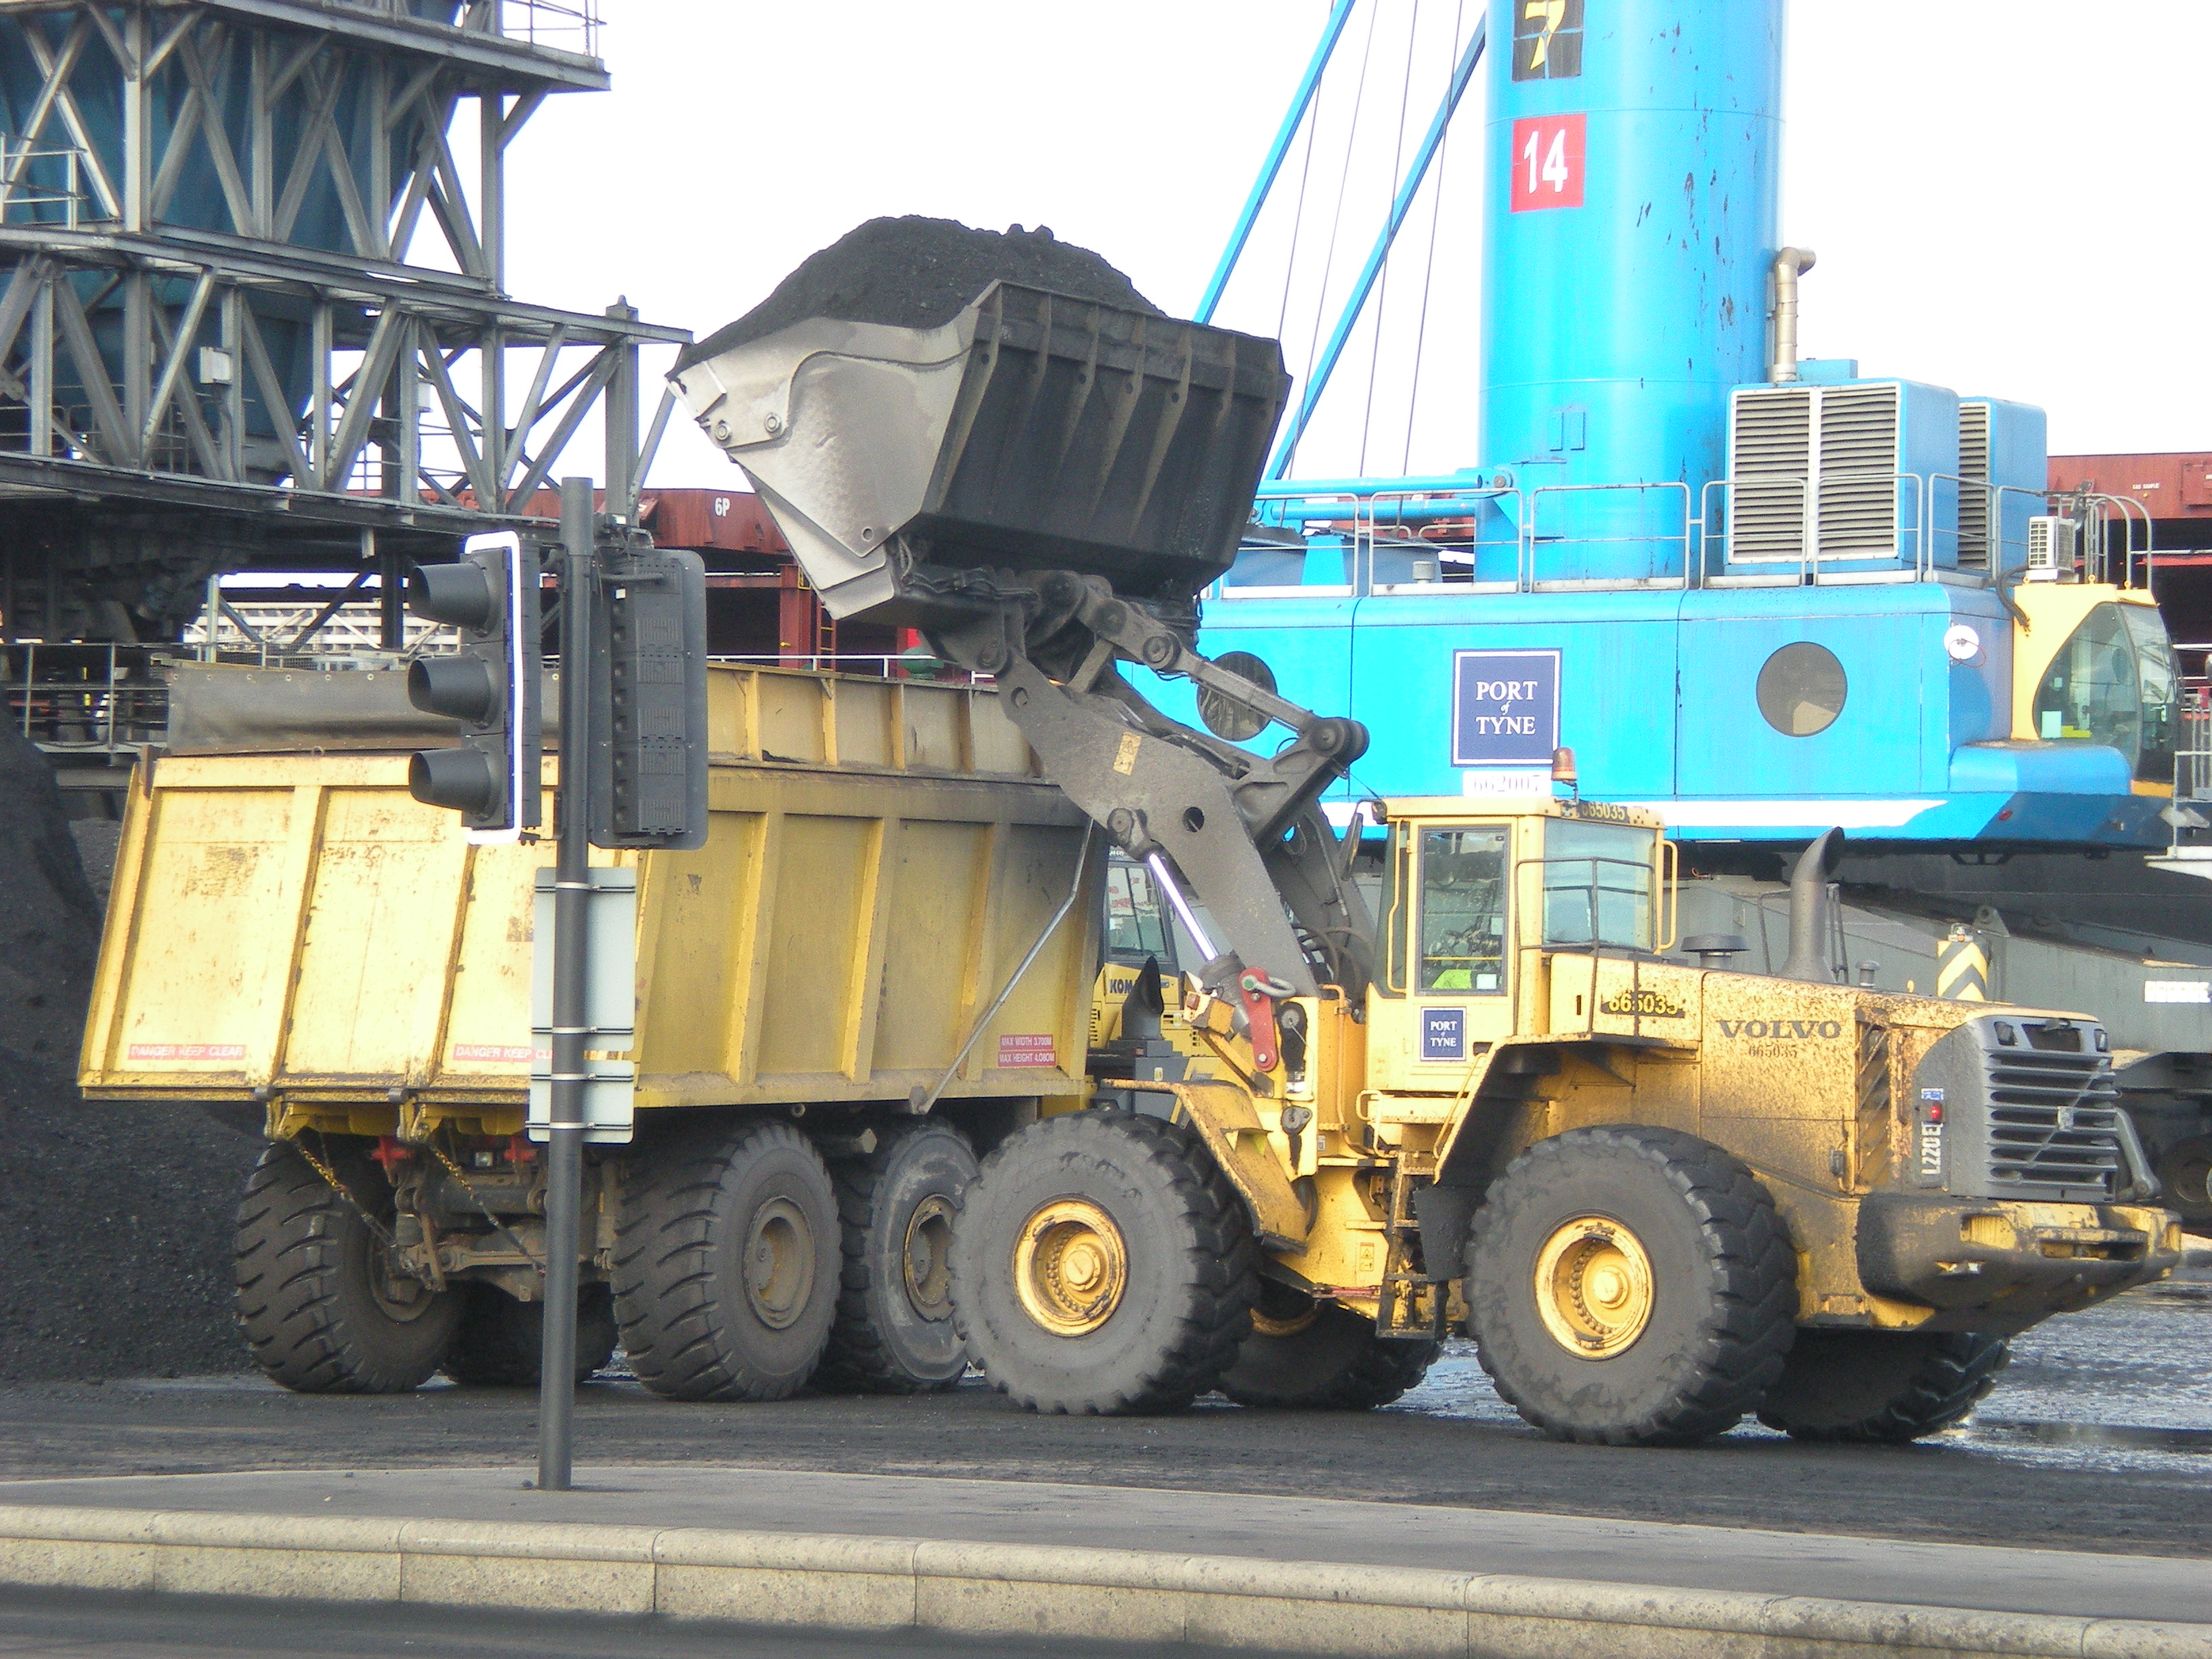 port of tyne coal operations and biomass operations 004.jpg